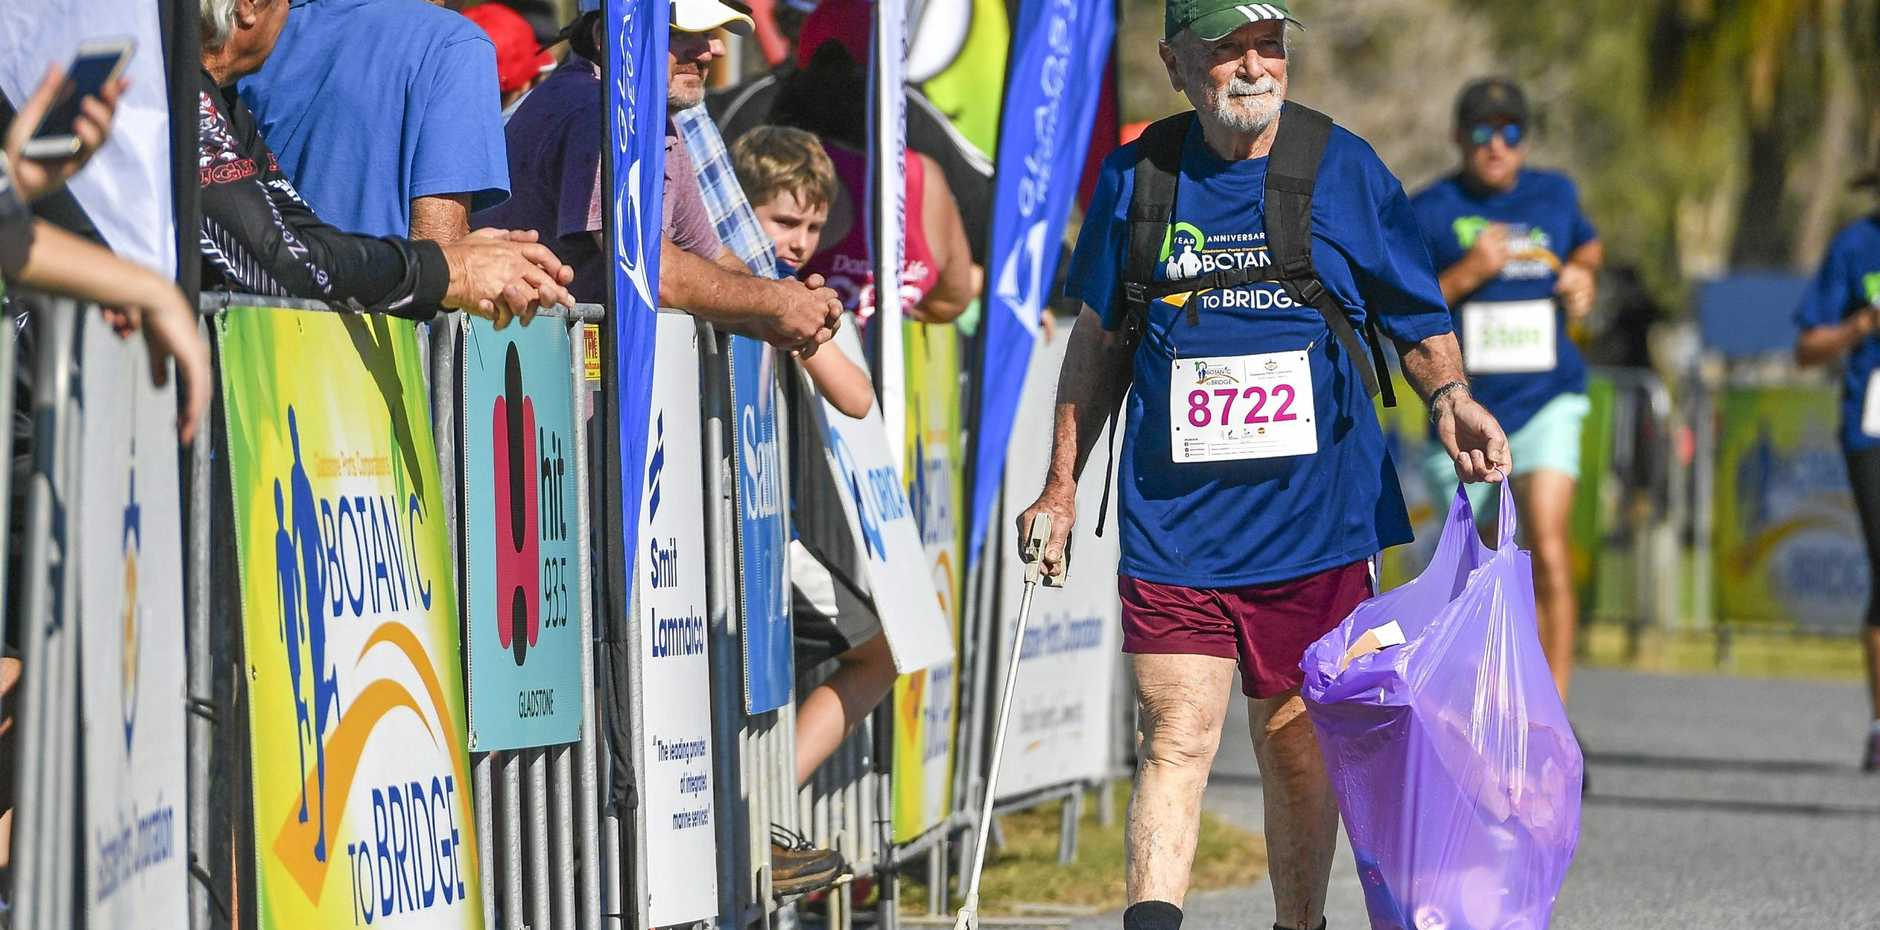 MAKING A DIFFERENCE: Brian Farber at the running of the tenth Gladstone Botanic To Bridge fun run at the Gladstone Marina Parklands.